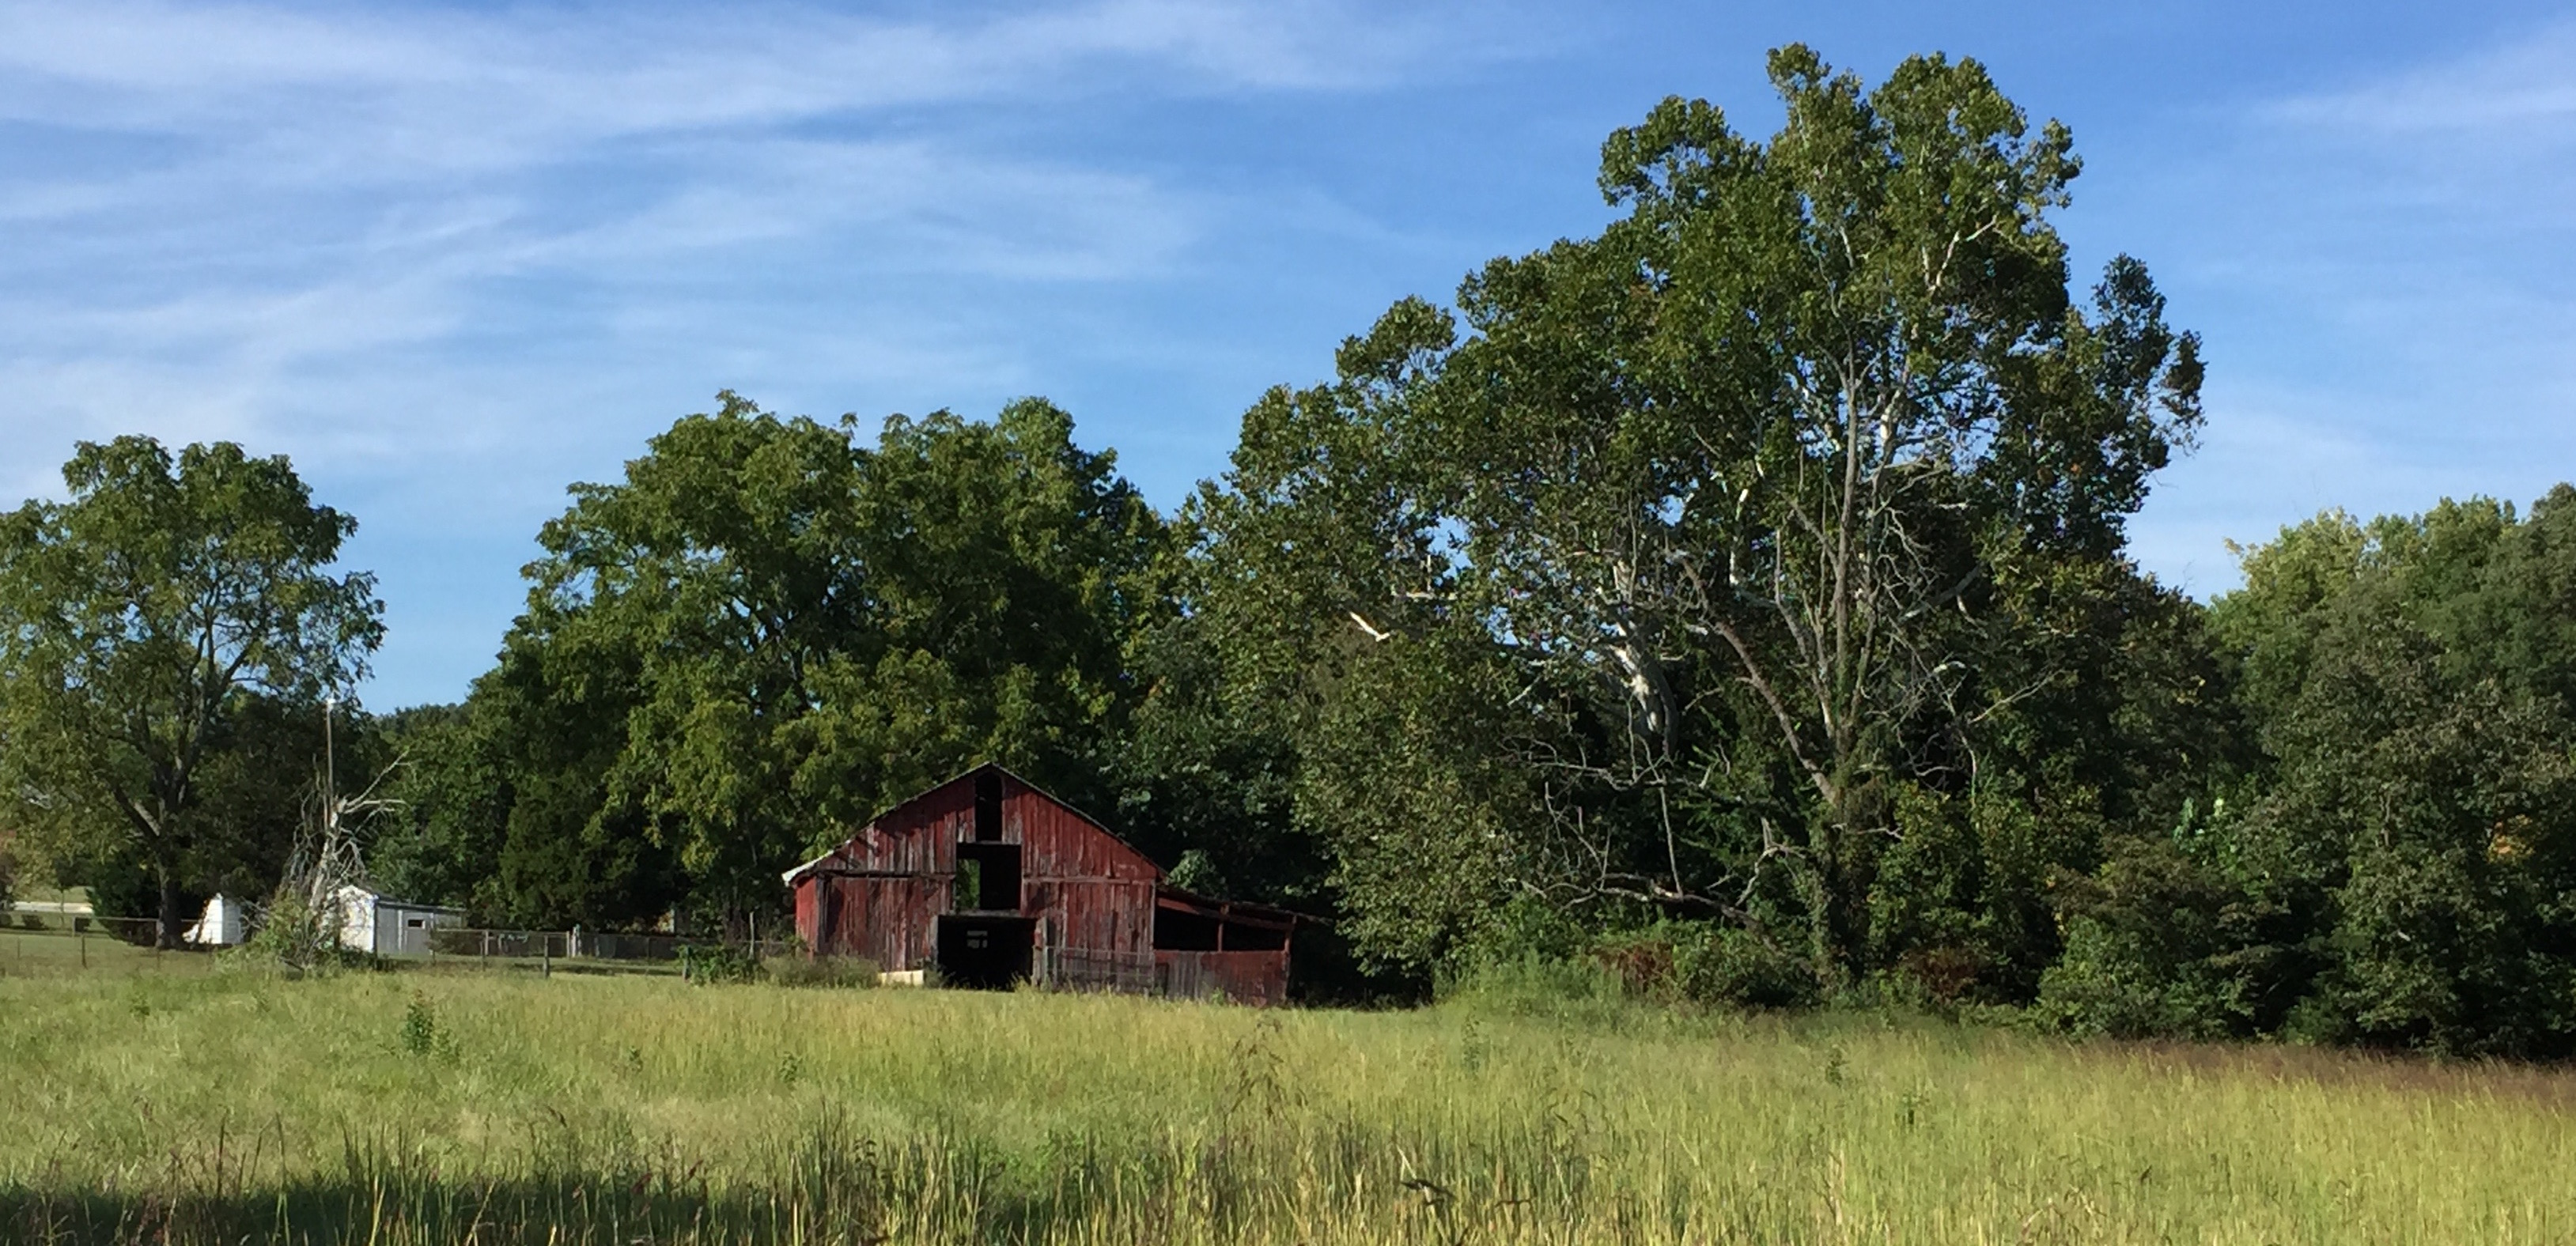 Caption: The remnants of a goat farm in Winston-Salem, NC.  This week's Across the Blue Ridge features a broad selection of regional music, plus a look ahead to a special event at the Blue Ridge Music Center on June 15.  , Credit: Paul Brown